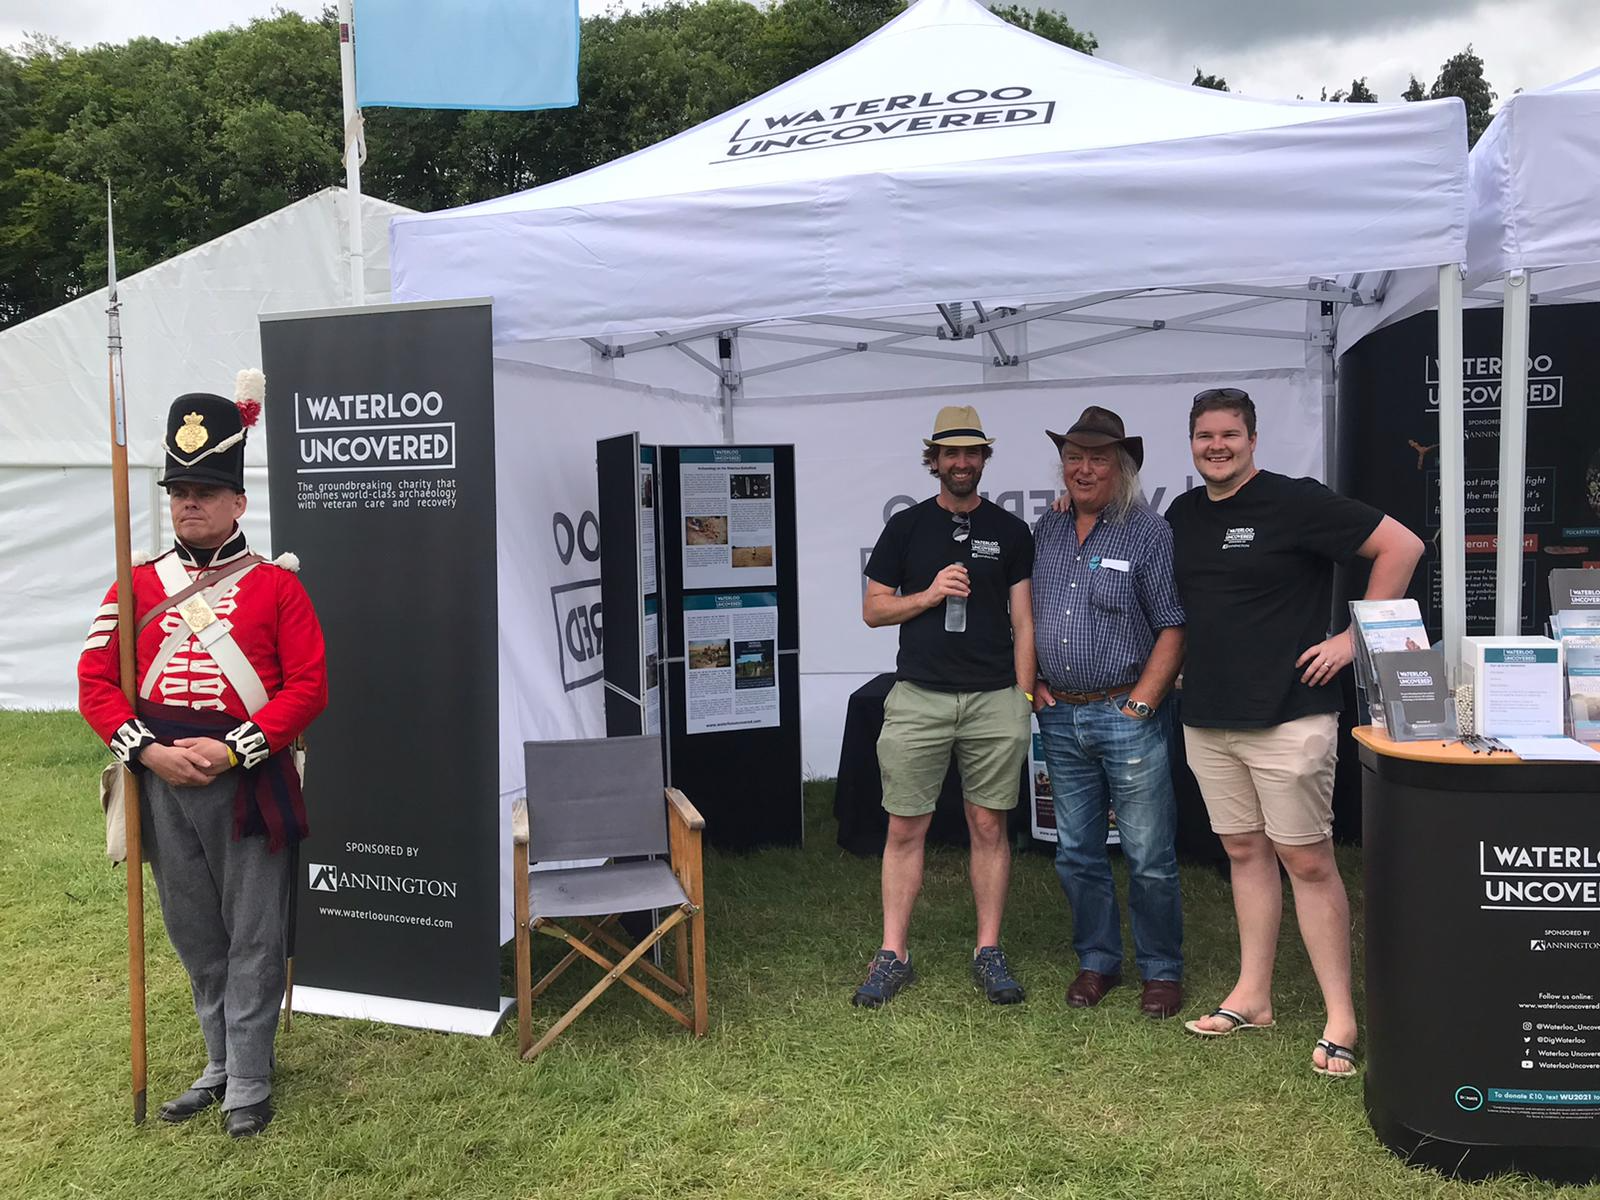 A Napoleonic reenactor, CEO Mark Evans, archaeologist Phil Harding, and web developer Sean Douglas in front of Waterloo Uncovered's stand at Chalke Valley history festival